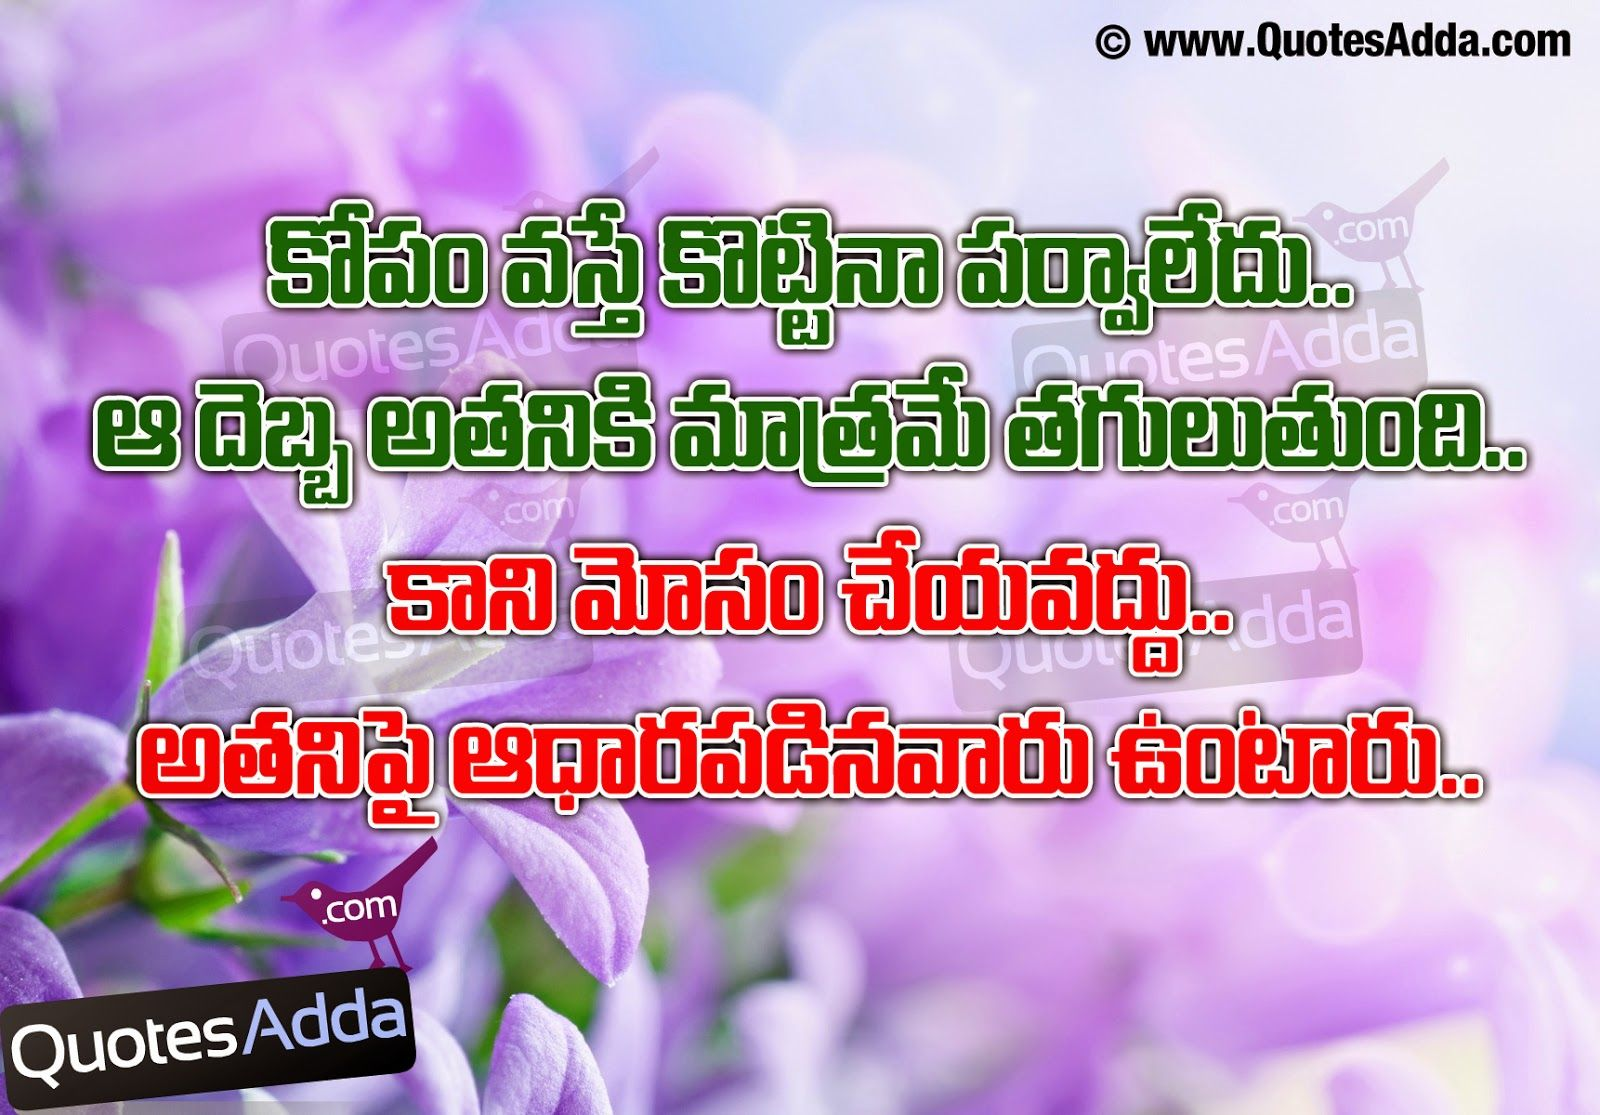 love you both meaning in telugu